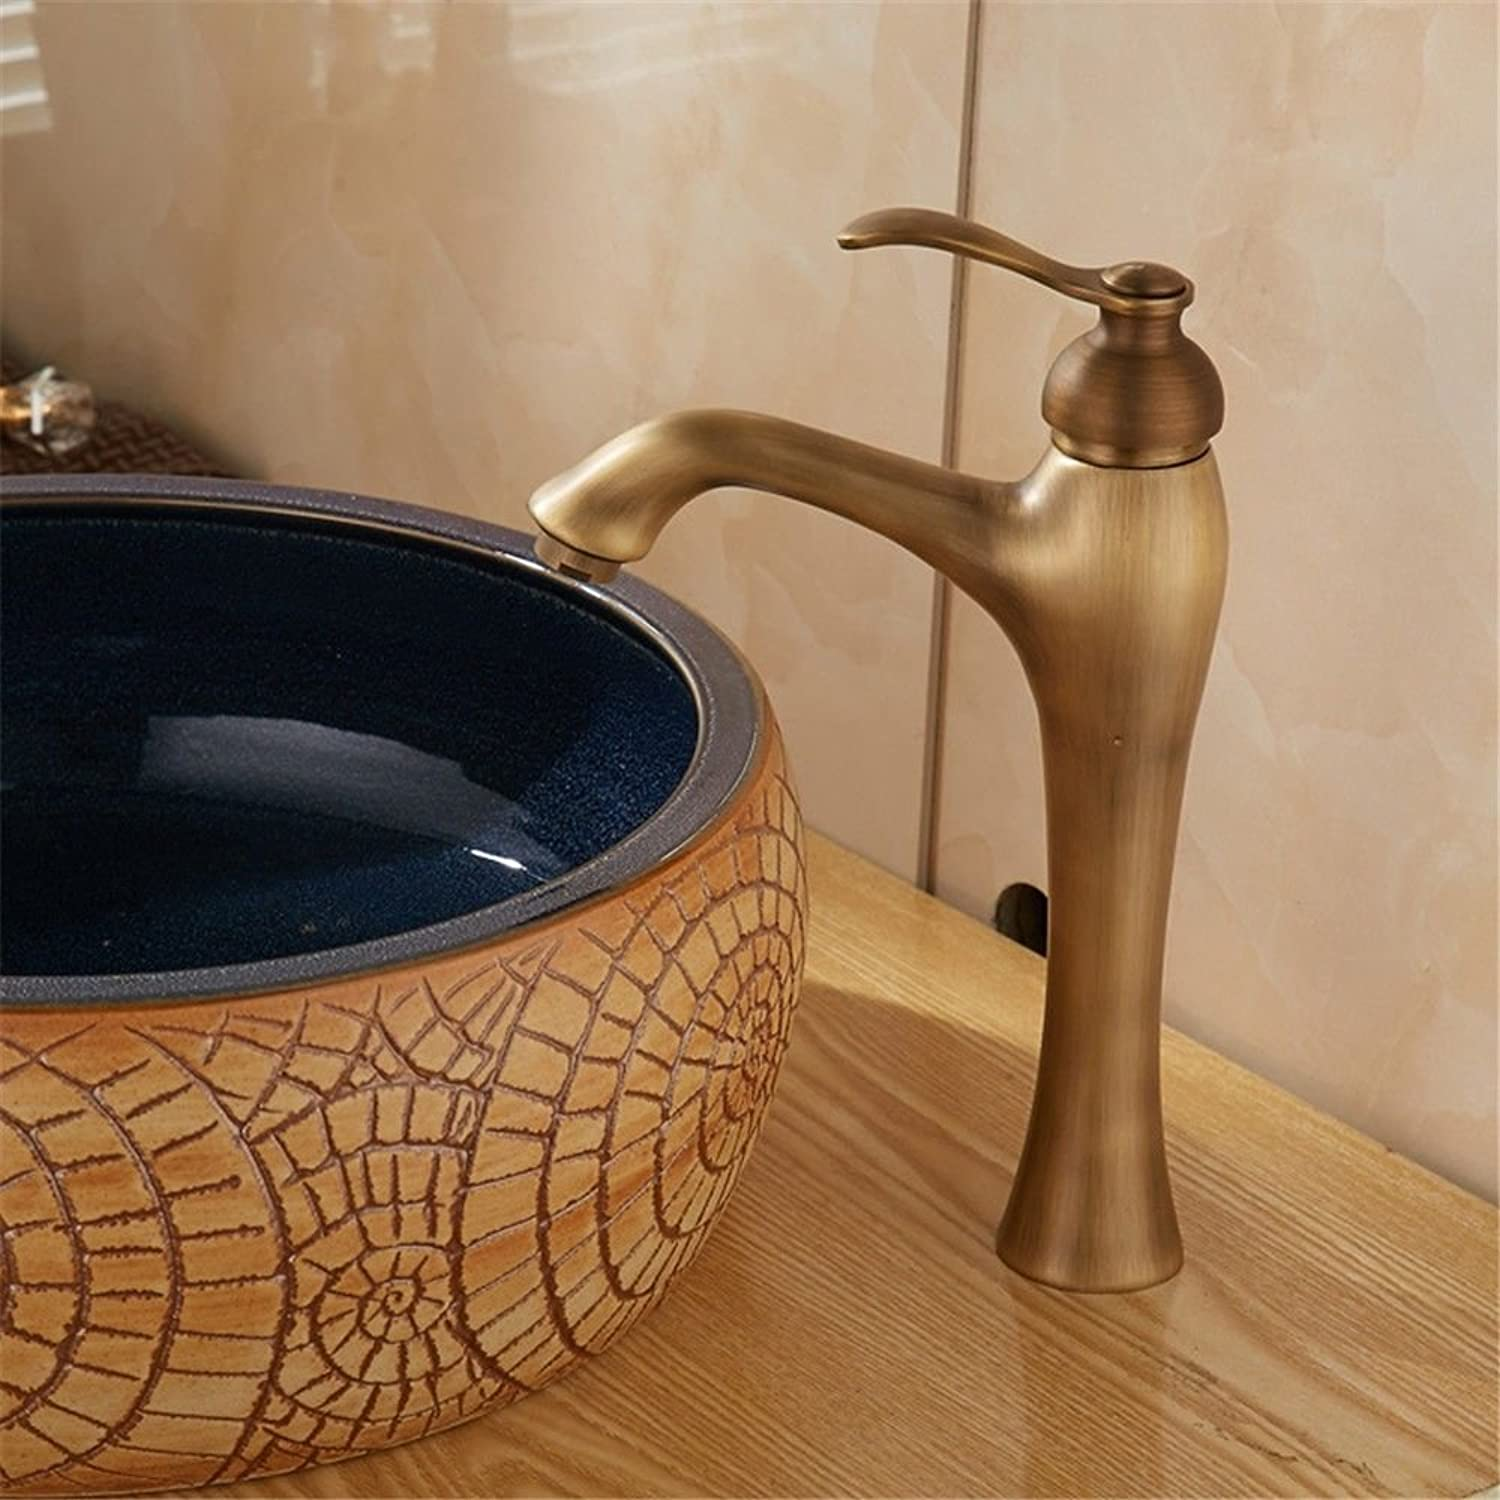 Ywqwdae Vintage Brass One-Handle Single Hole Hot and Cold Taps Kitchen Taps Basin Faucets Cold and Hot Water Mixer Bathroom Mixer Basin Mixer Tap for Kitchen Or Bathroom Taps